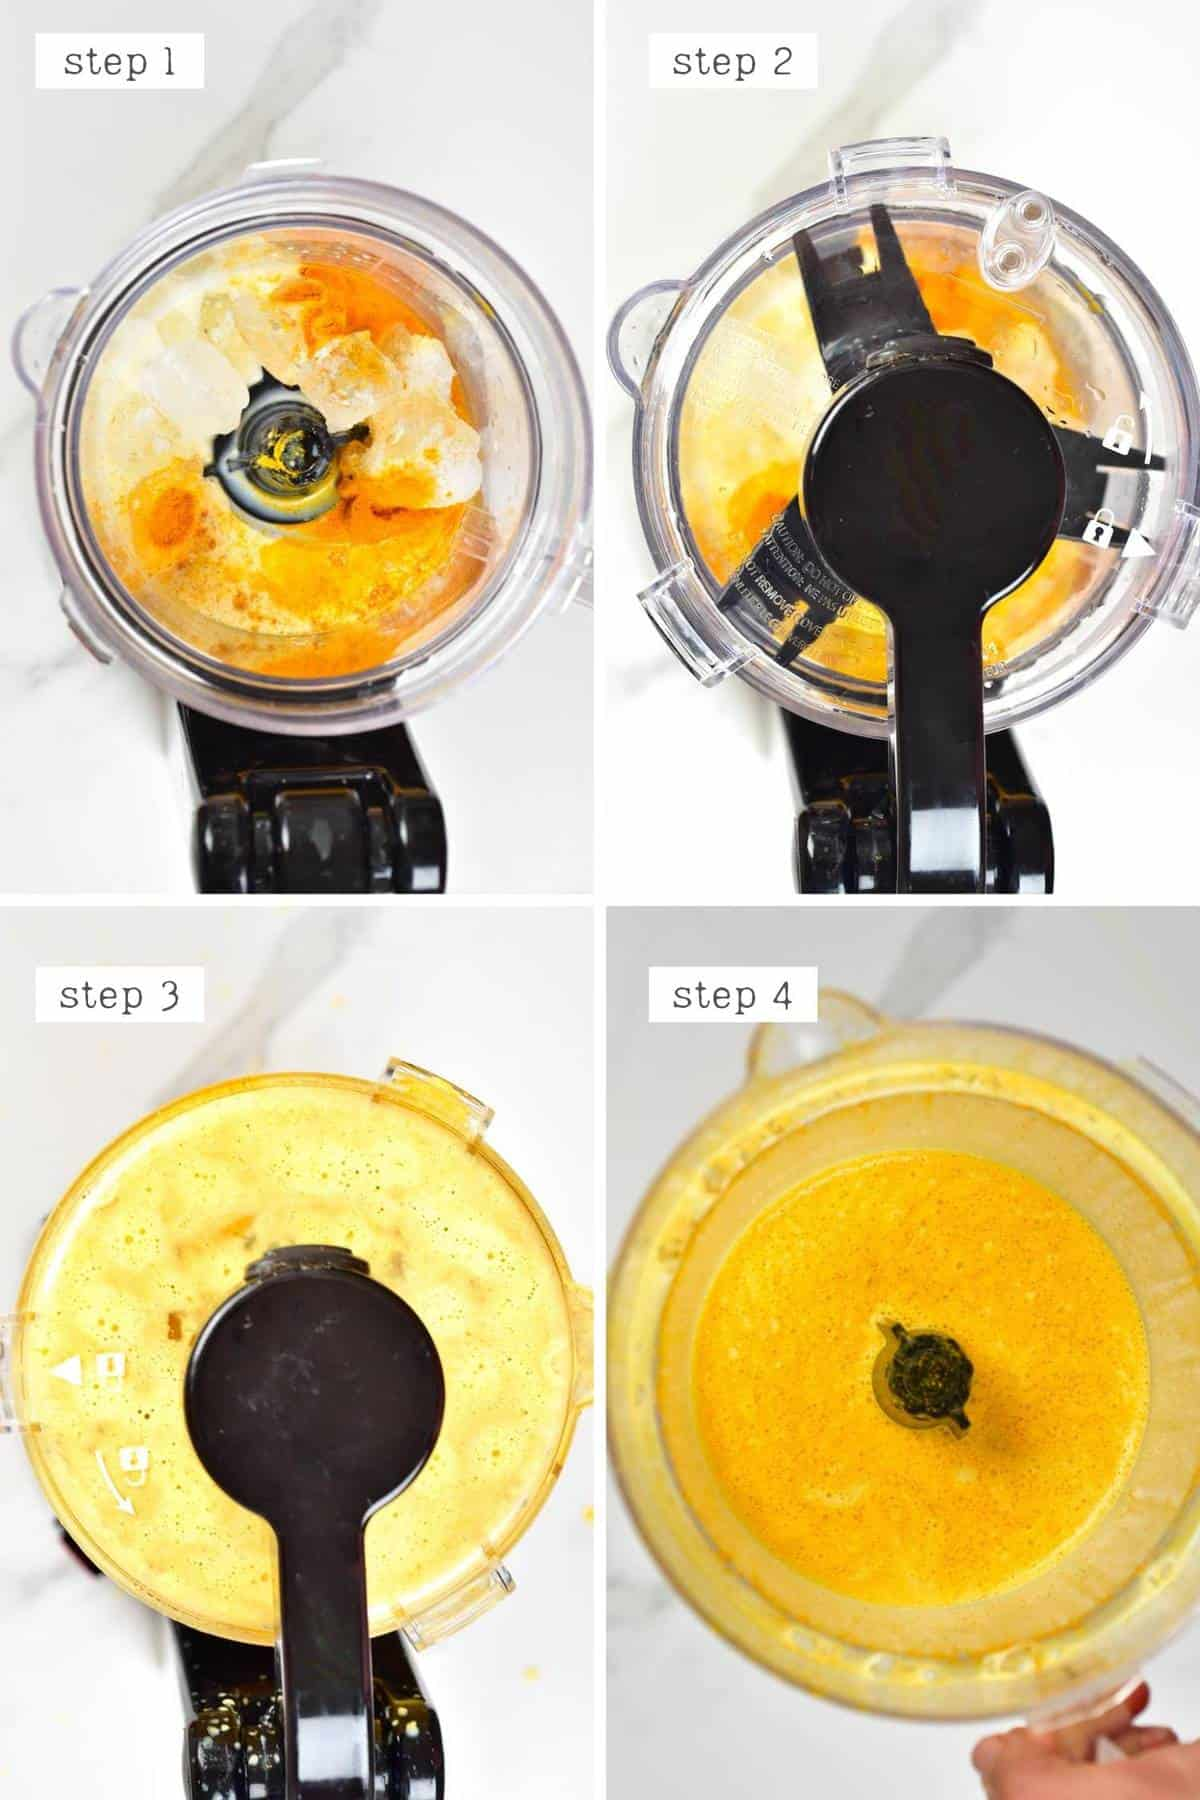 Steps for making Golden Frappuccino